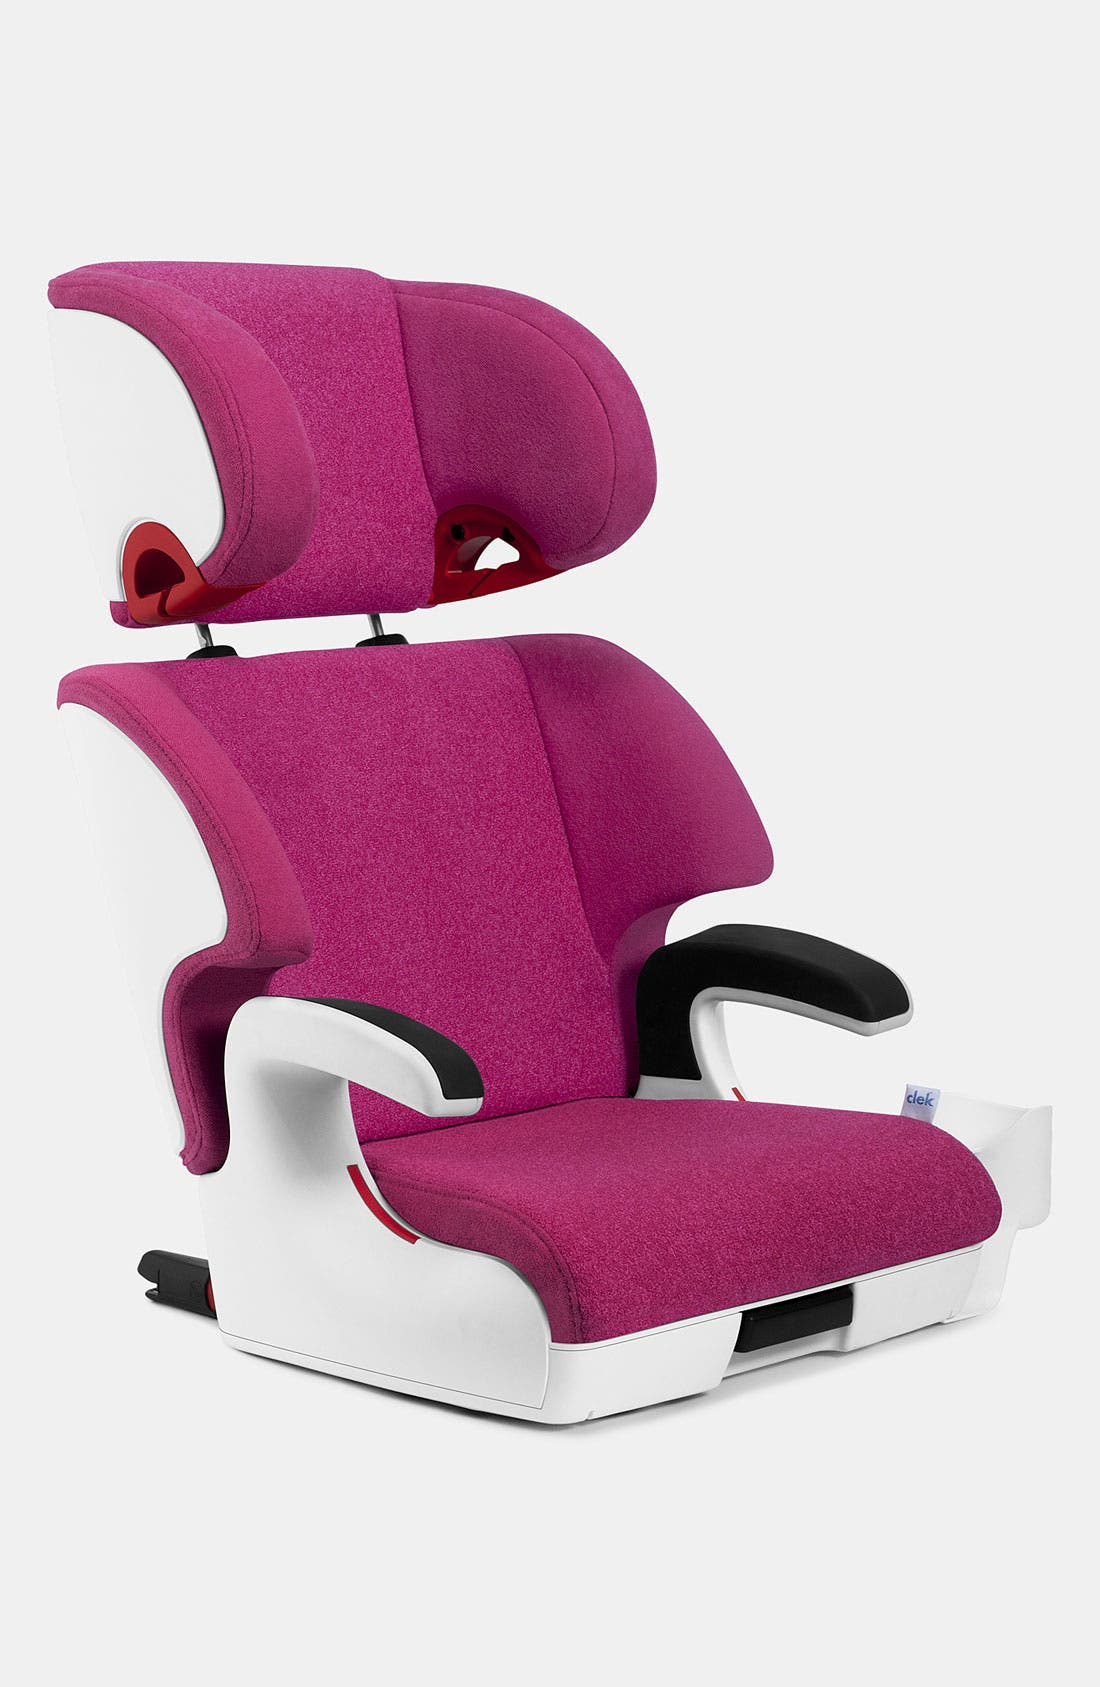 Main Image - Clek 'Oobr' Booster Seat